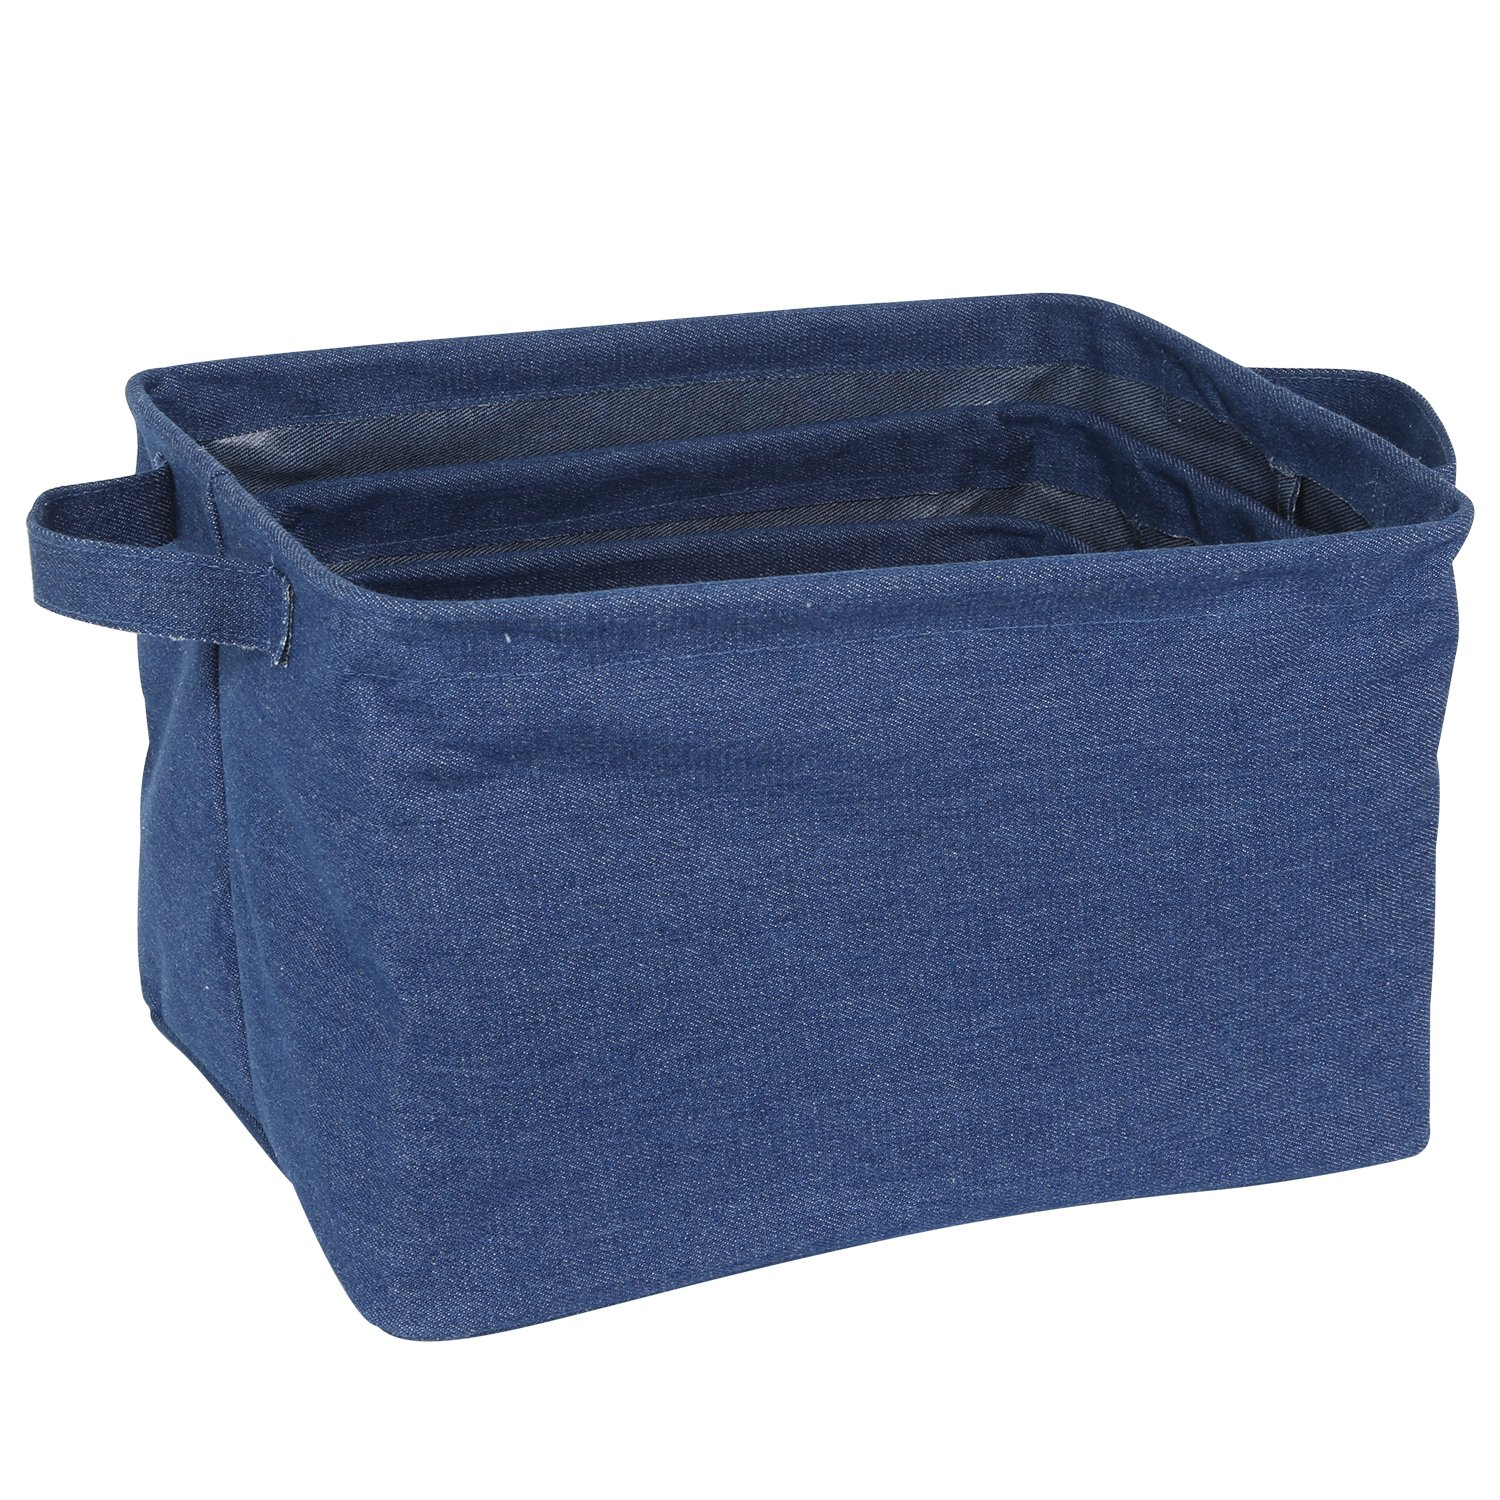 LTD StorageBin Arts CO Neoviva PU Coated Cotton Denim Waterproof and Foldable Open Storage Bin with Handles HangZhou Solid Indigo Blue XinDaSheng Set of 3